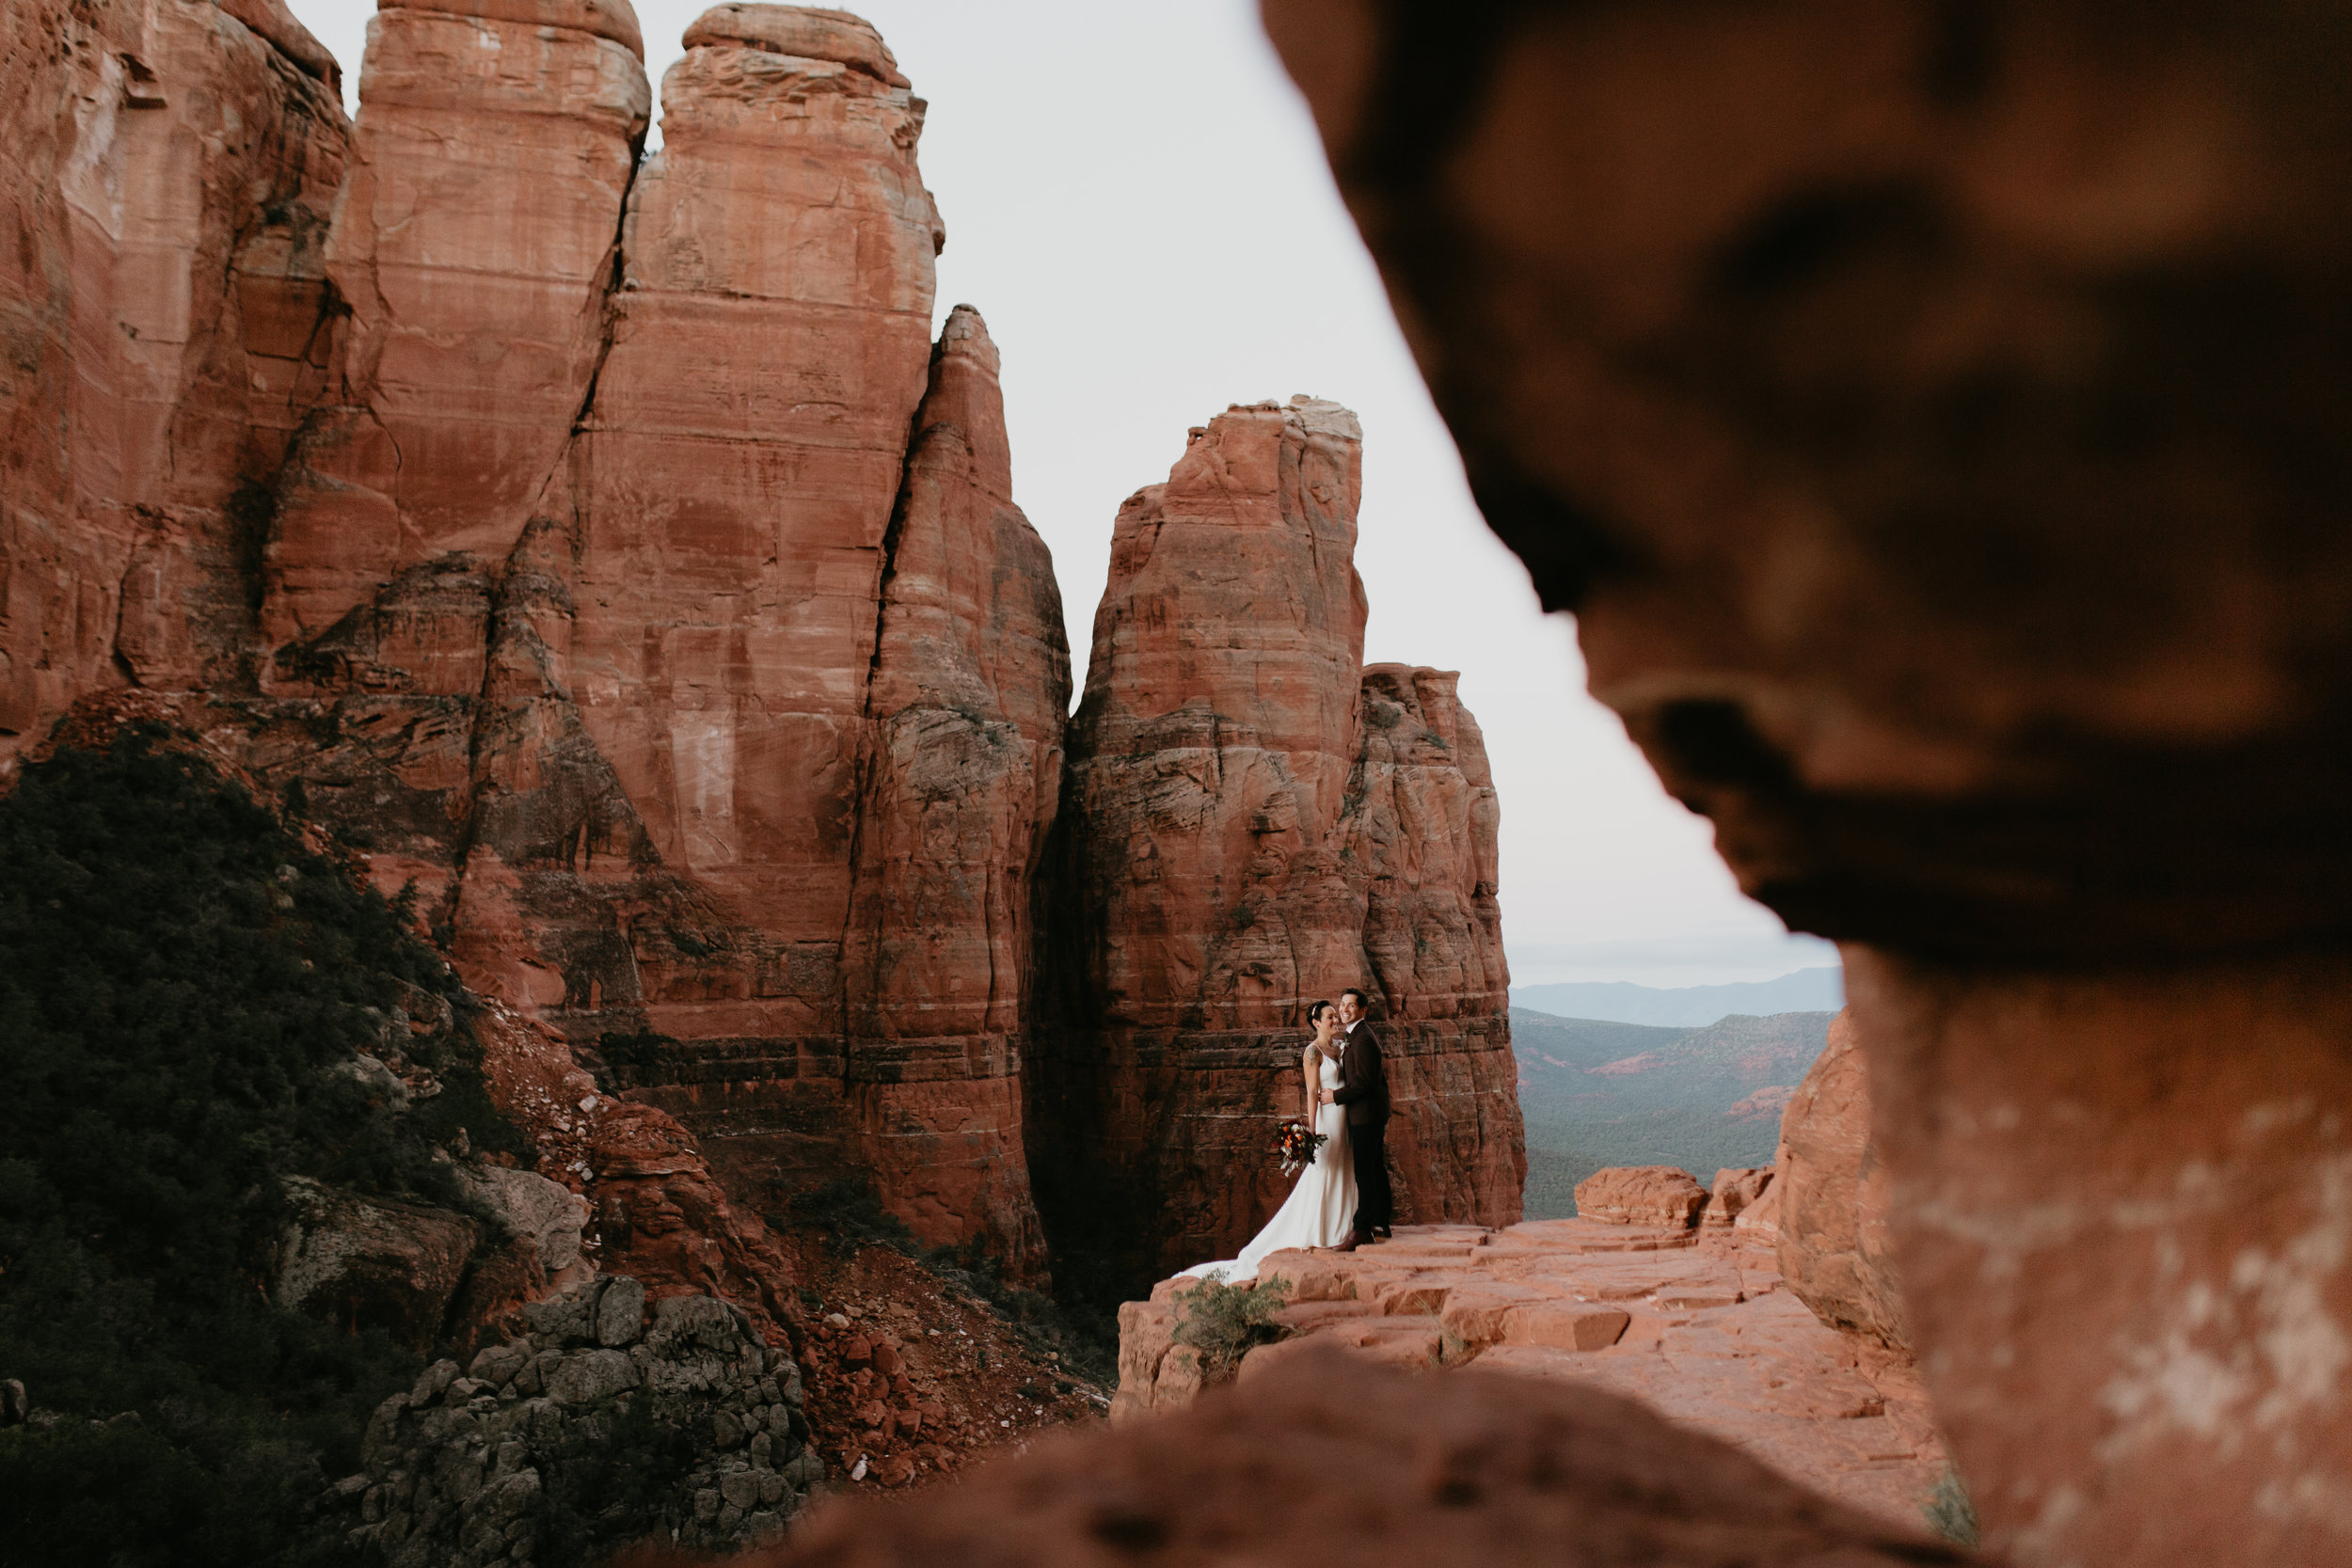 nicole-daacke-photography-sedona-arizona-adventurous-elopement-adventure-elope-photographer-cathedral-rock-sedona-vortex-intimate-wedding-hiking-elopement-photographer-8.jpg